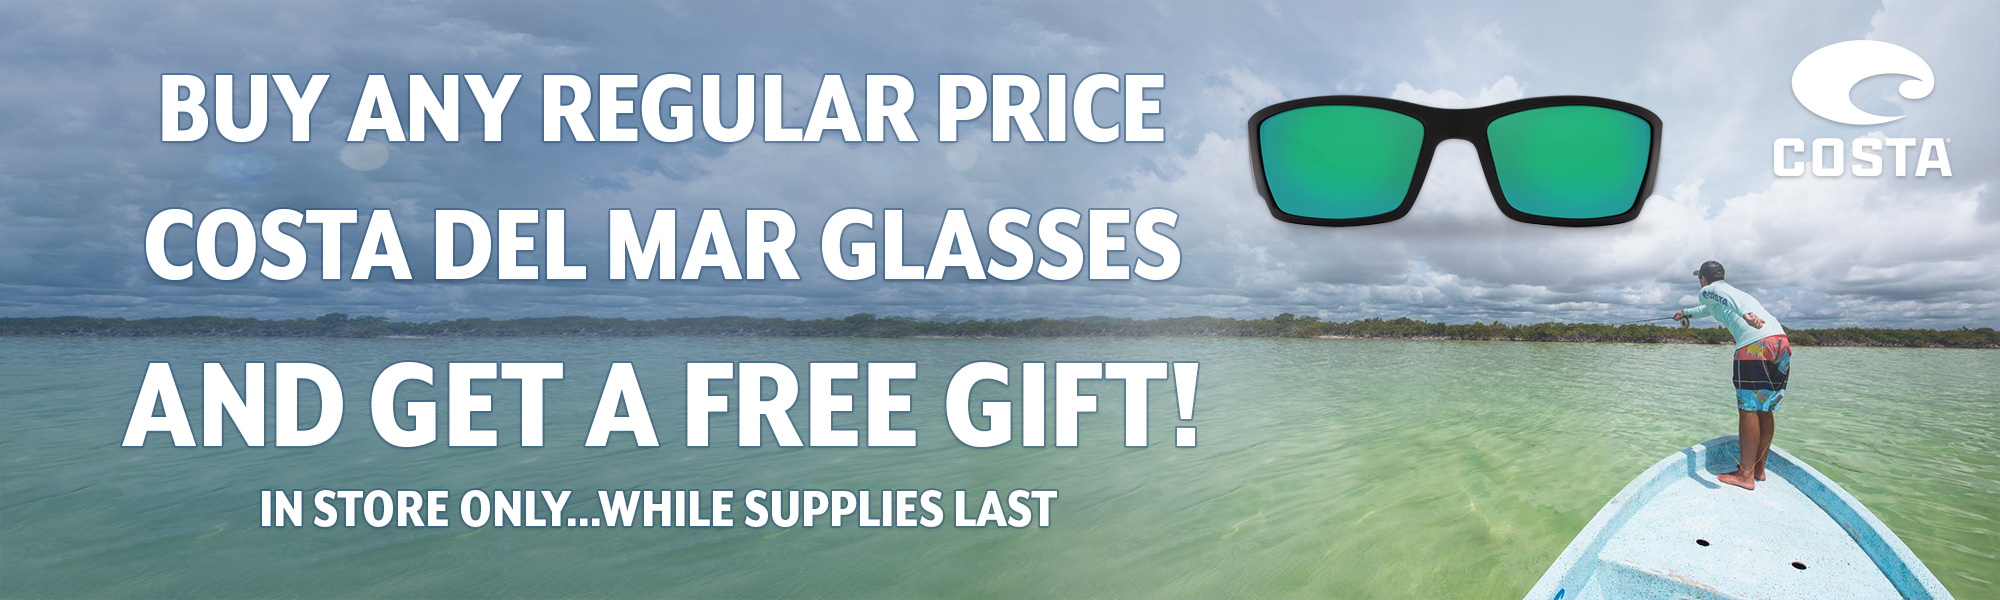 FREE Gift with purchase of regular priced Costa Del Mar sunglasses